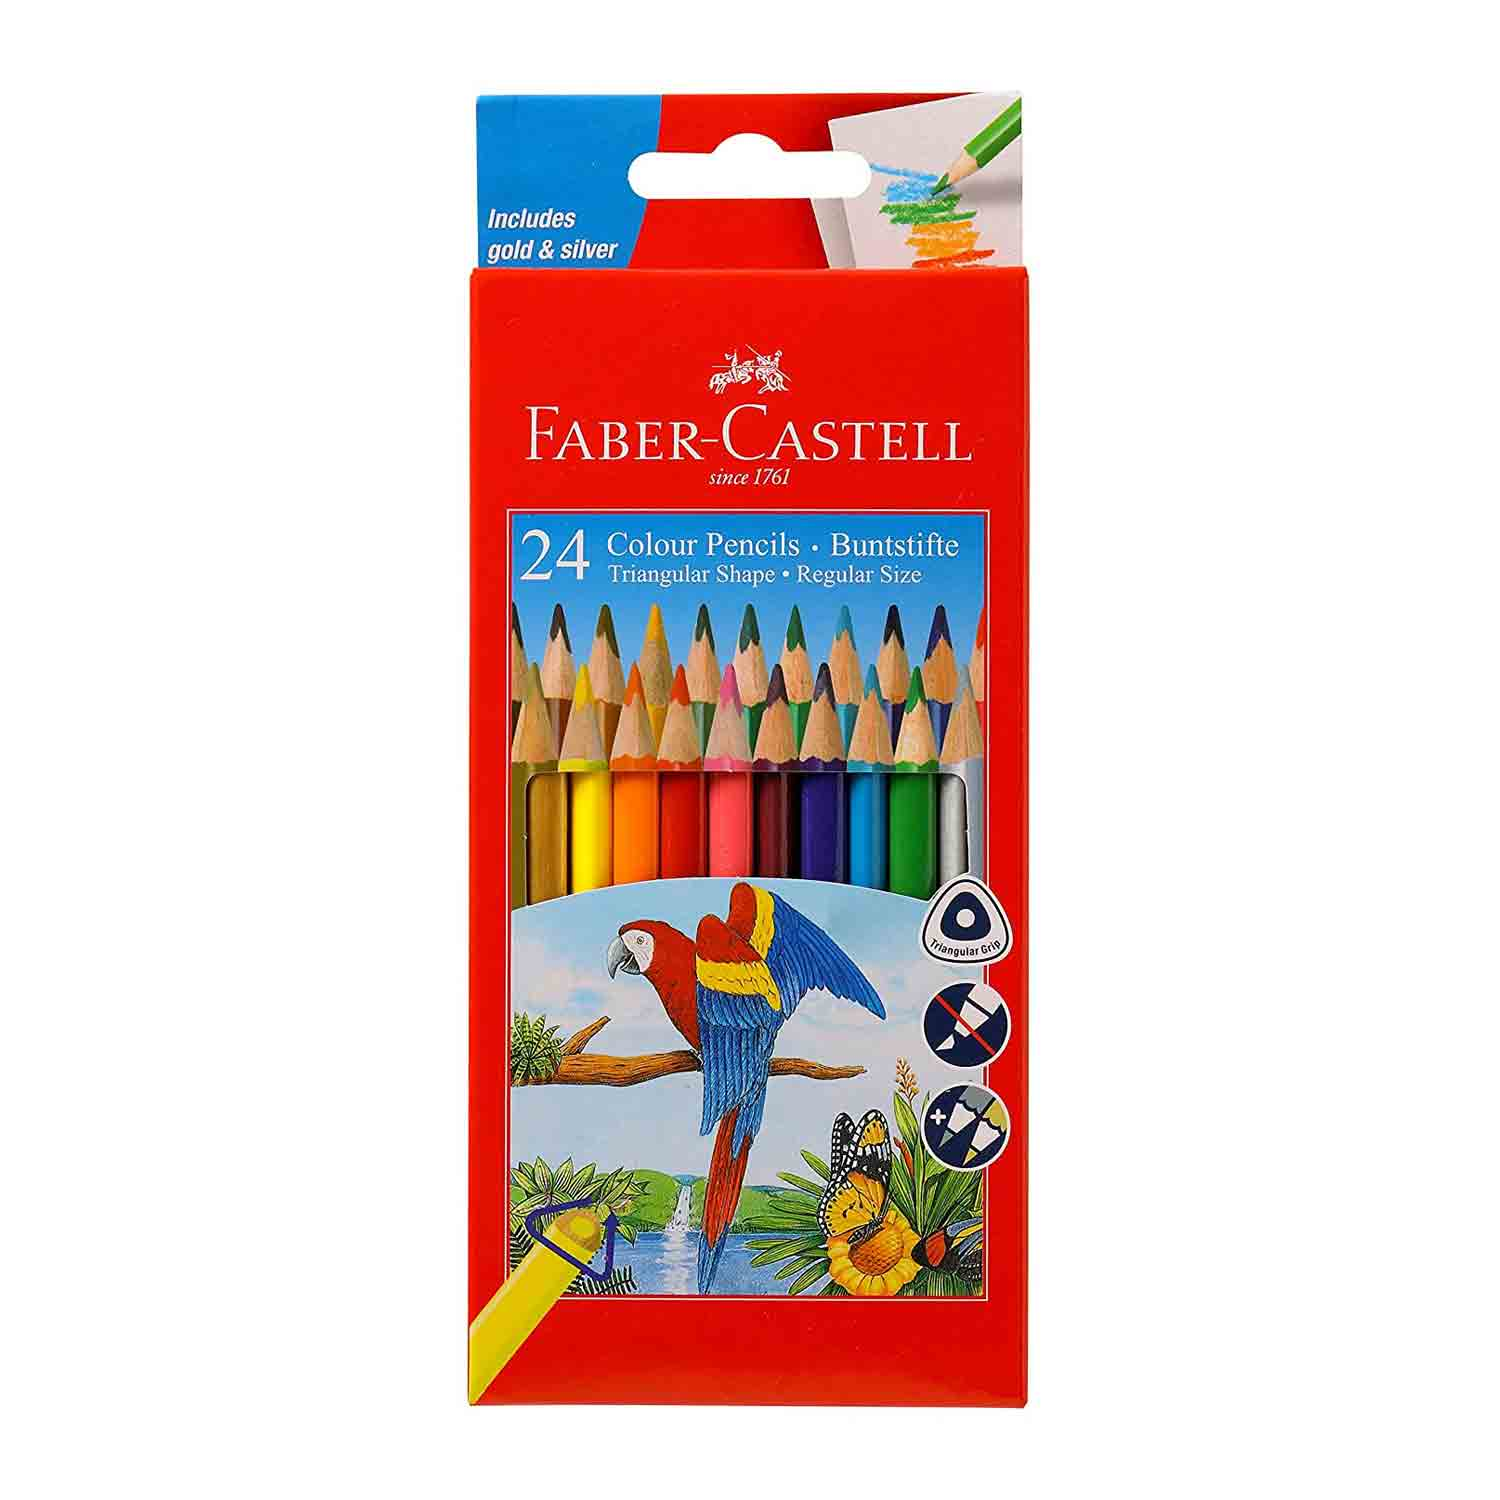 Faber-Castell Triangular Colour Pencils (Pack of 24 Coloured)